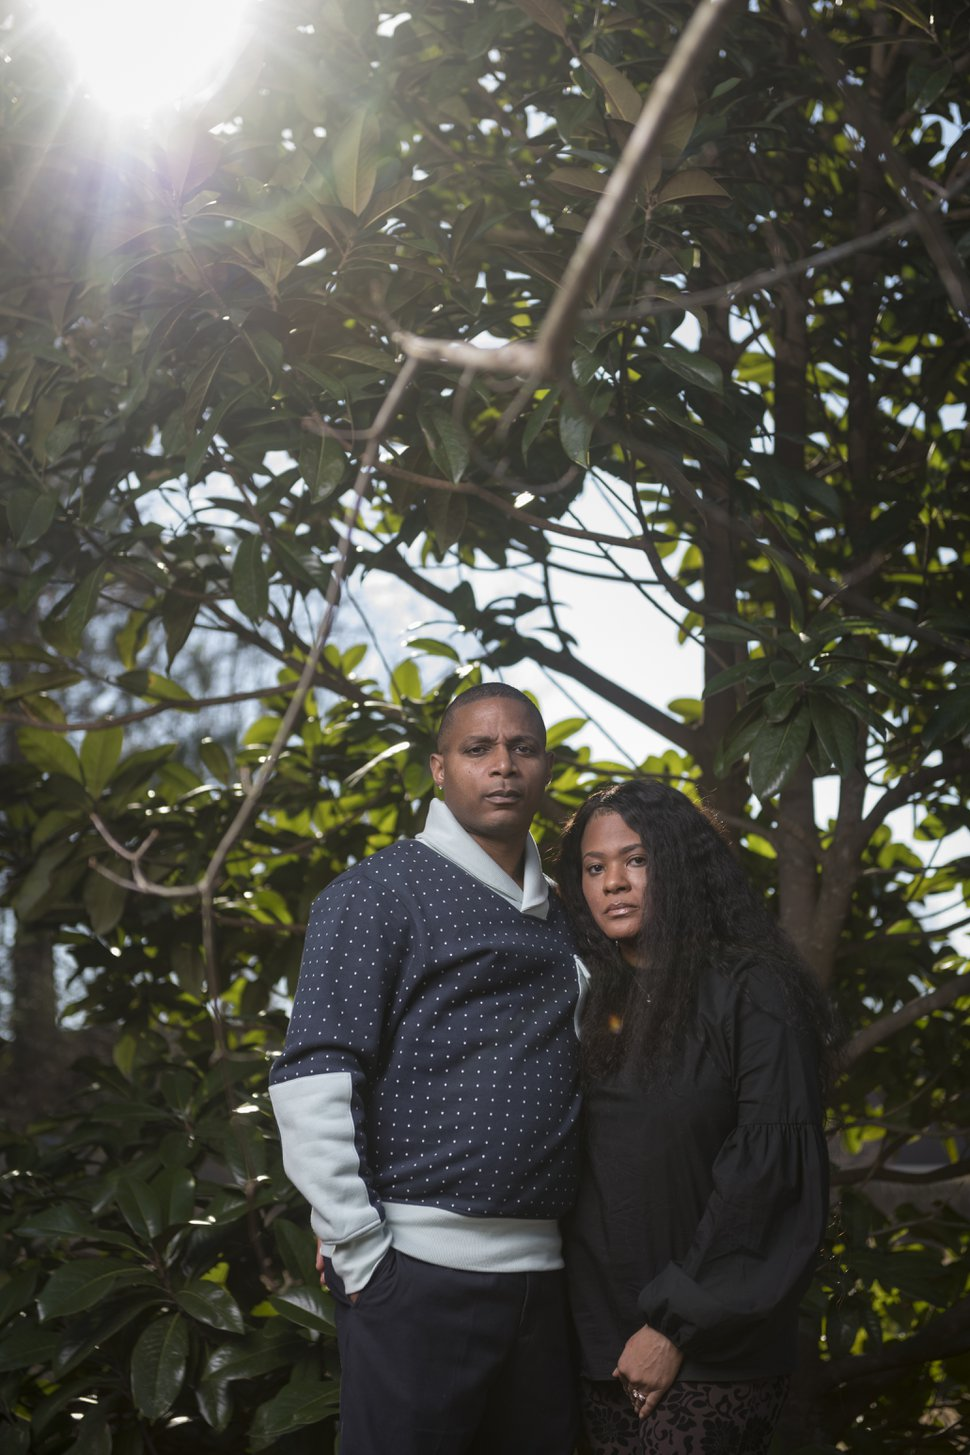 (Michael A. Schwarz | The Washington Post) Timothy and JonJelyn Savage at their home in Stockbridge, Ga. The Savages believe that their daughter Joycelyn is being abused by R. Kelly.